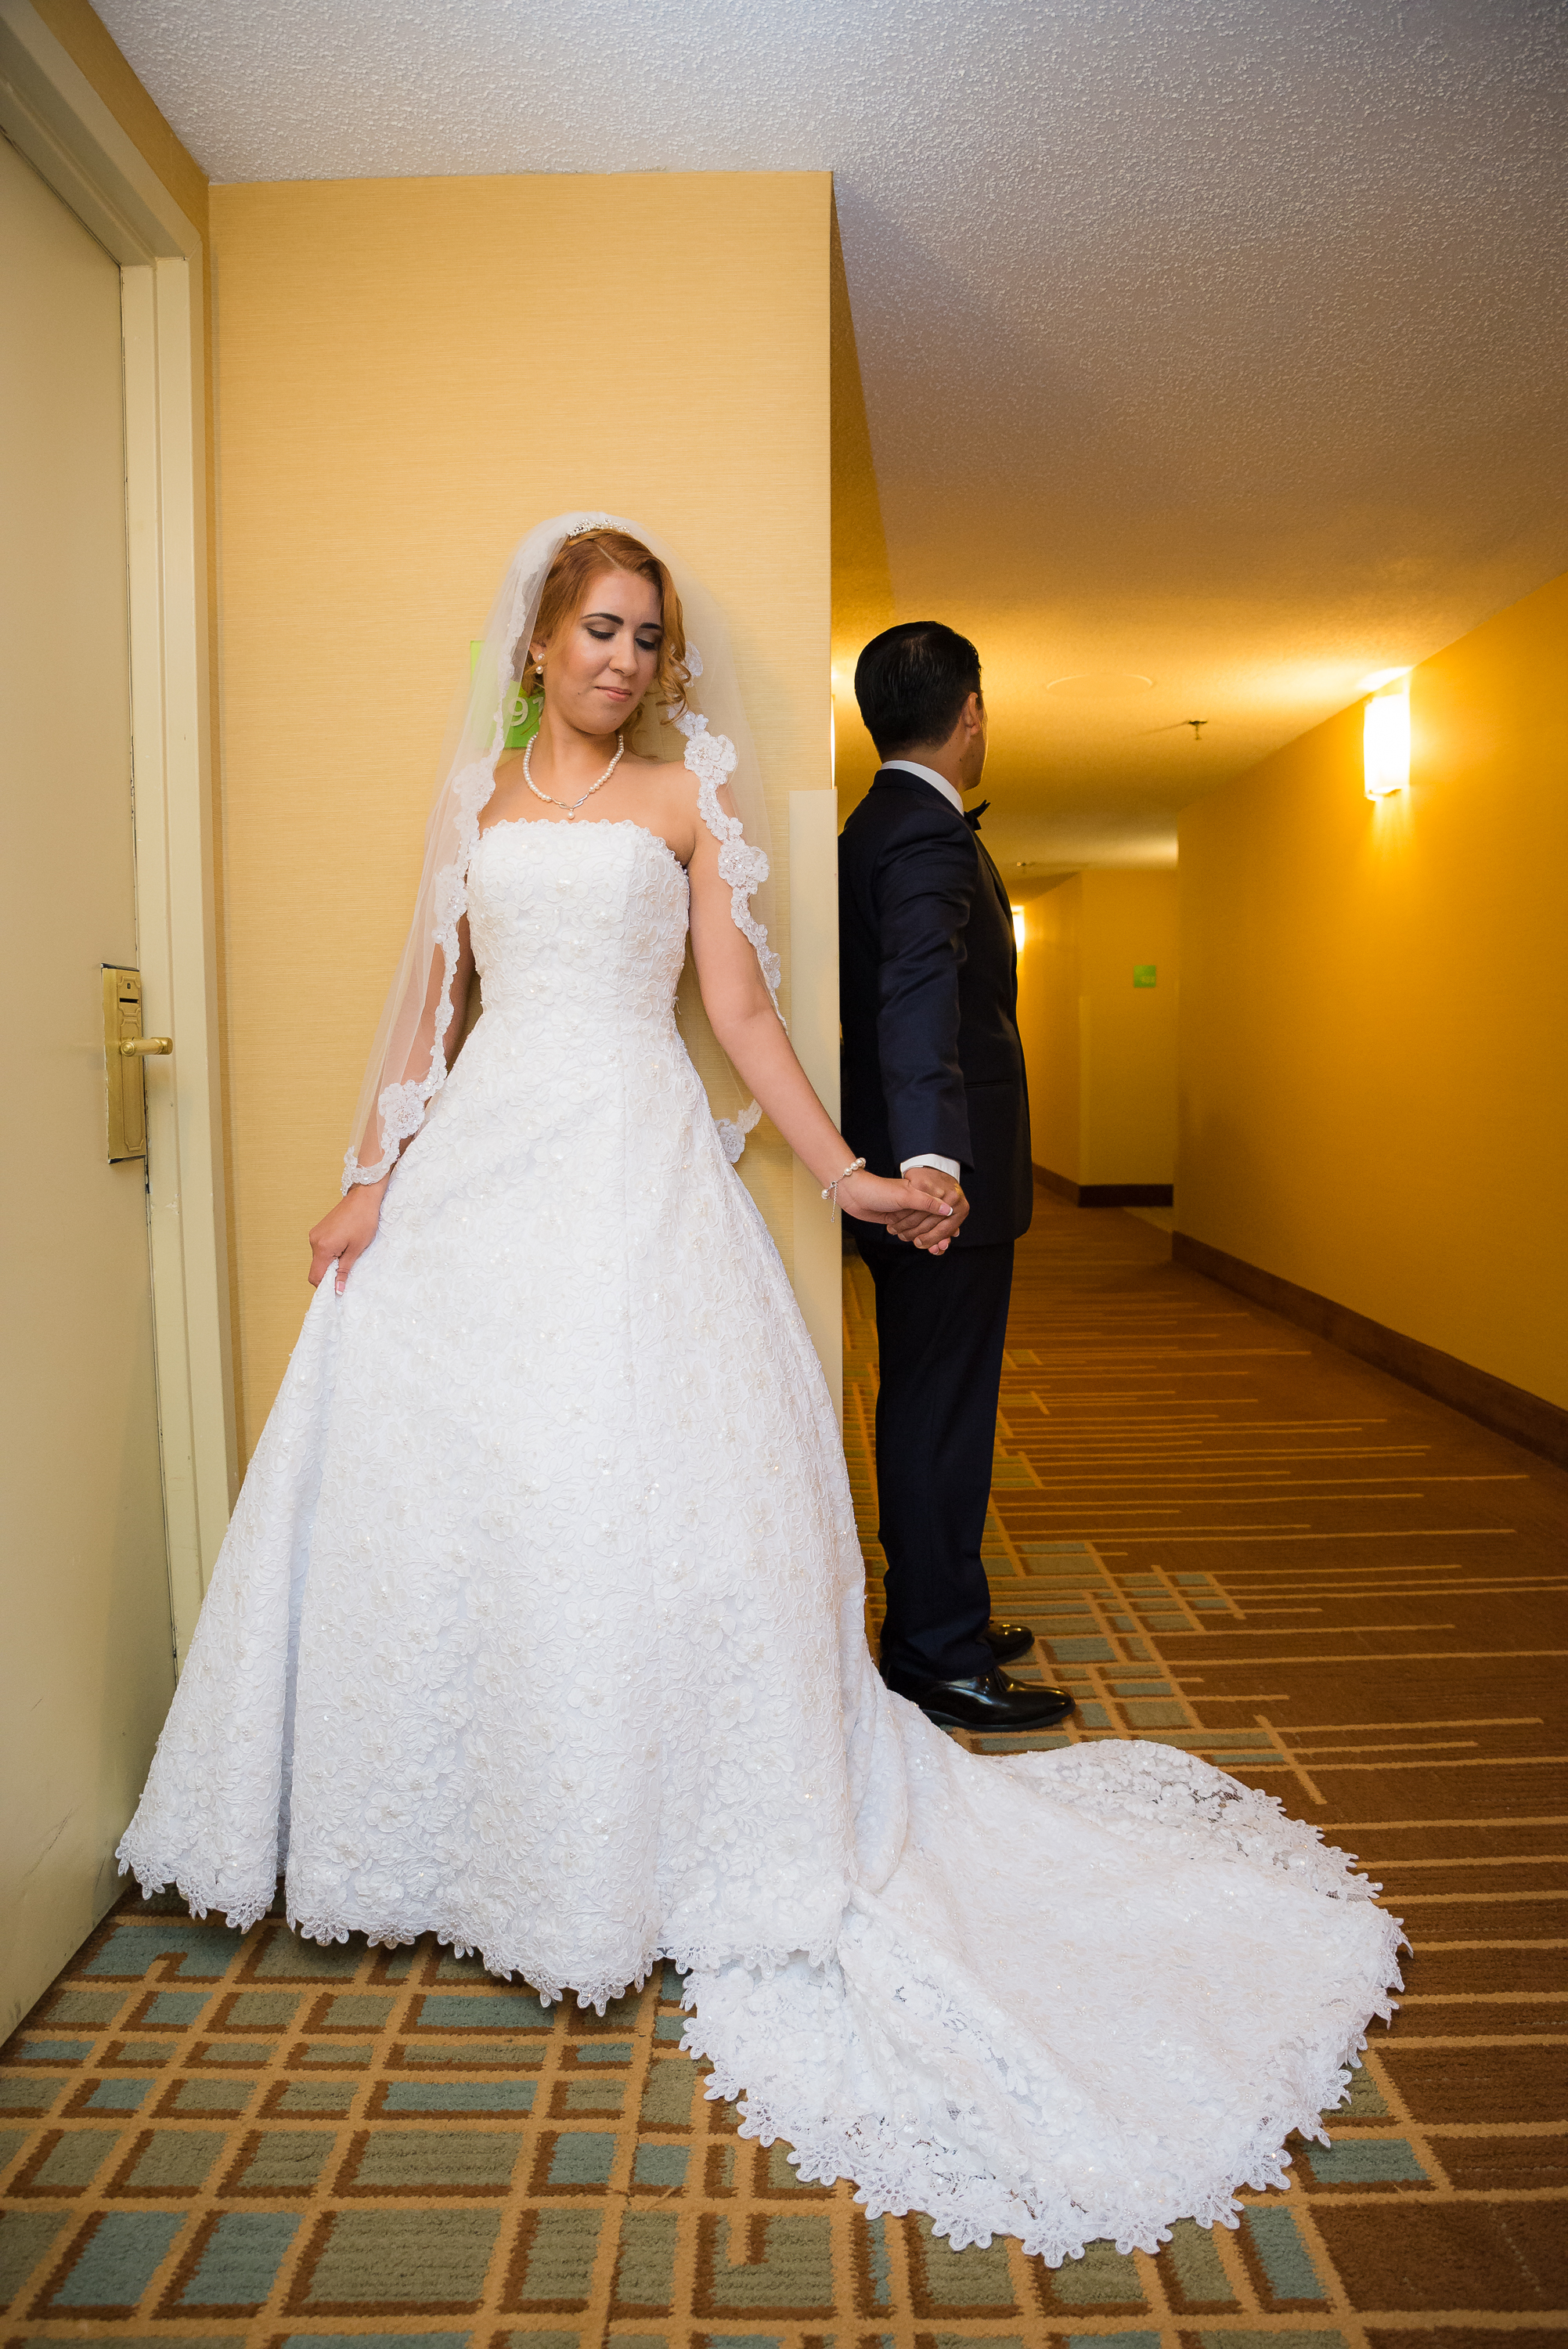 Karlenis-Juancarlos-Wedding-Garcia-Photography-7124.jpg